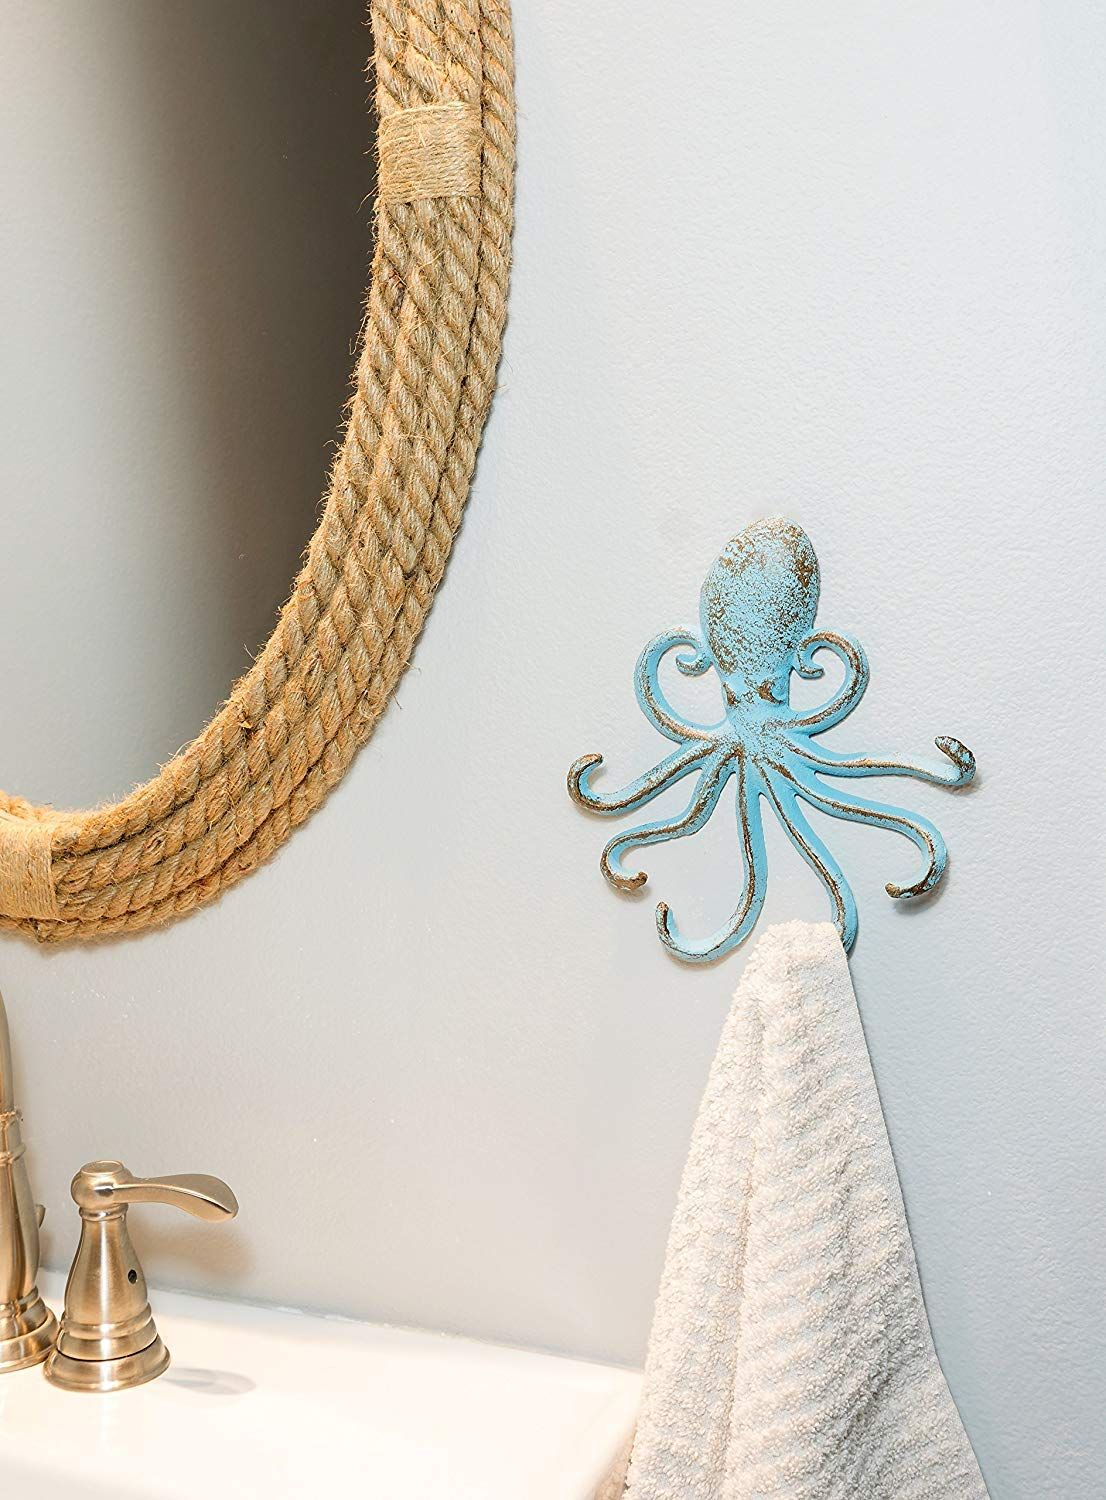 Beach Wall Hooks And Beach Towel Hooks Beachfront Decor In 2020 Beach Wall Decor Wall Hooks Beachfront Decor